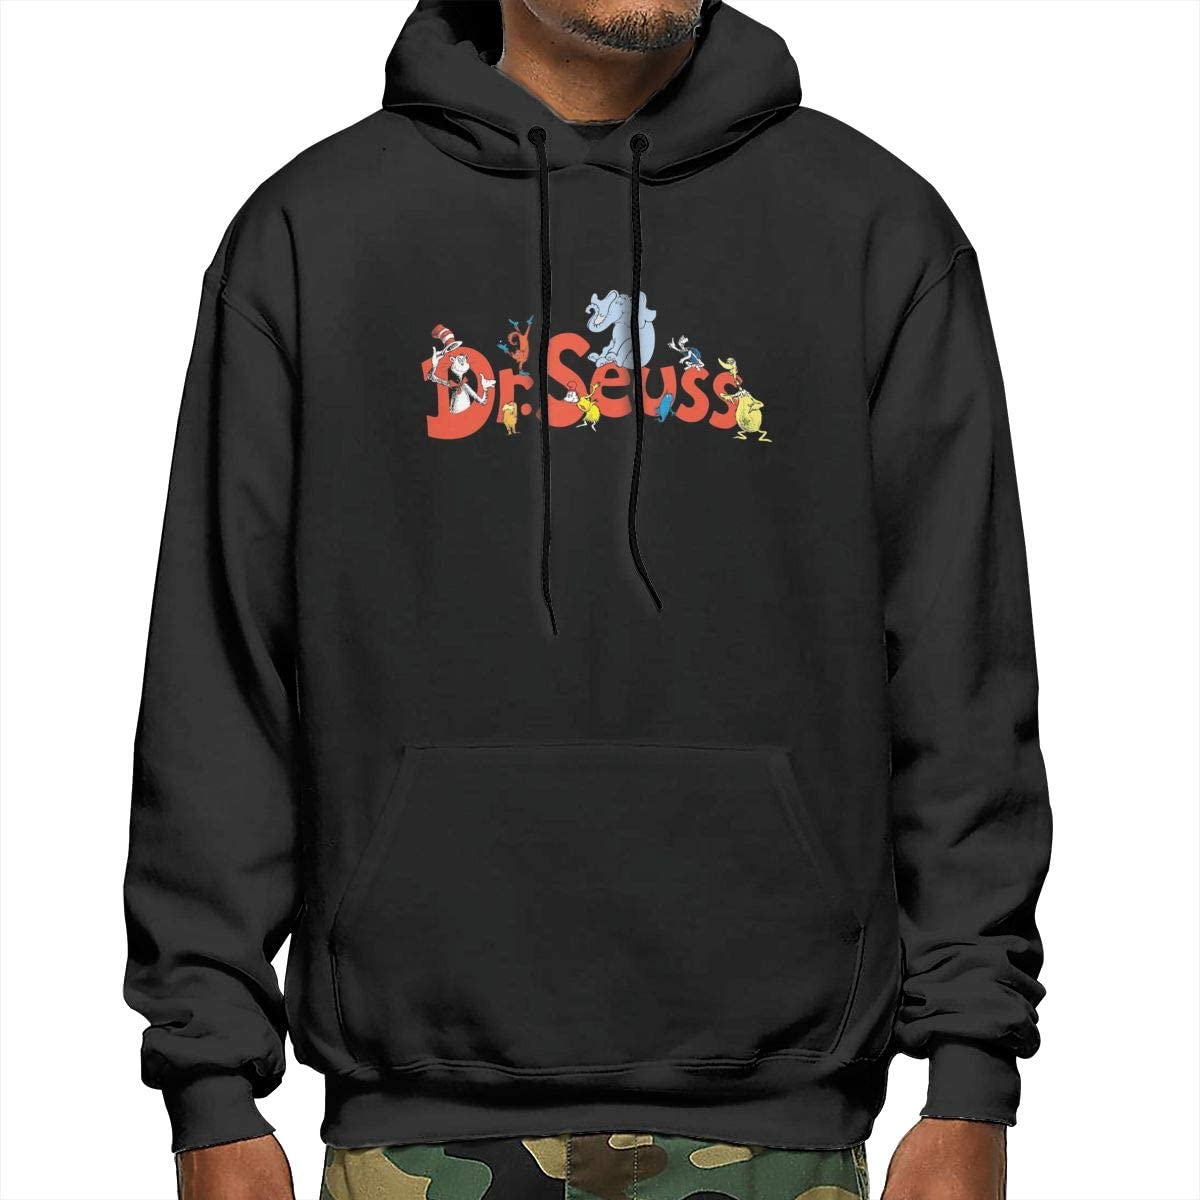 Dr Come and Suess Mens Fashion Athletic Casual Hoodies Long Sleeves Loose Fit Sweatshirt with Kangaroo Pocket